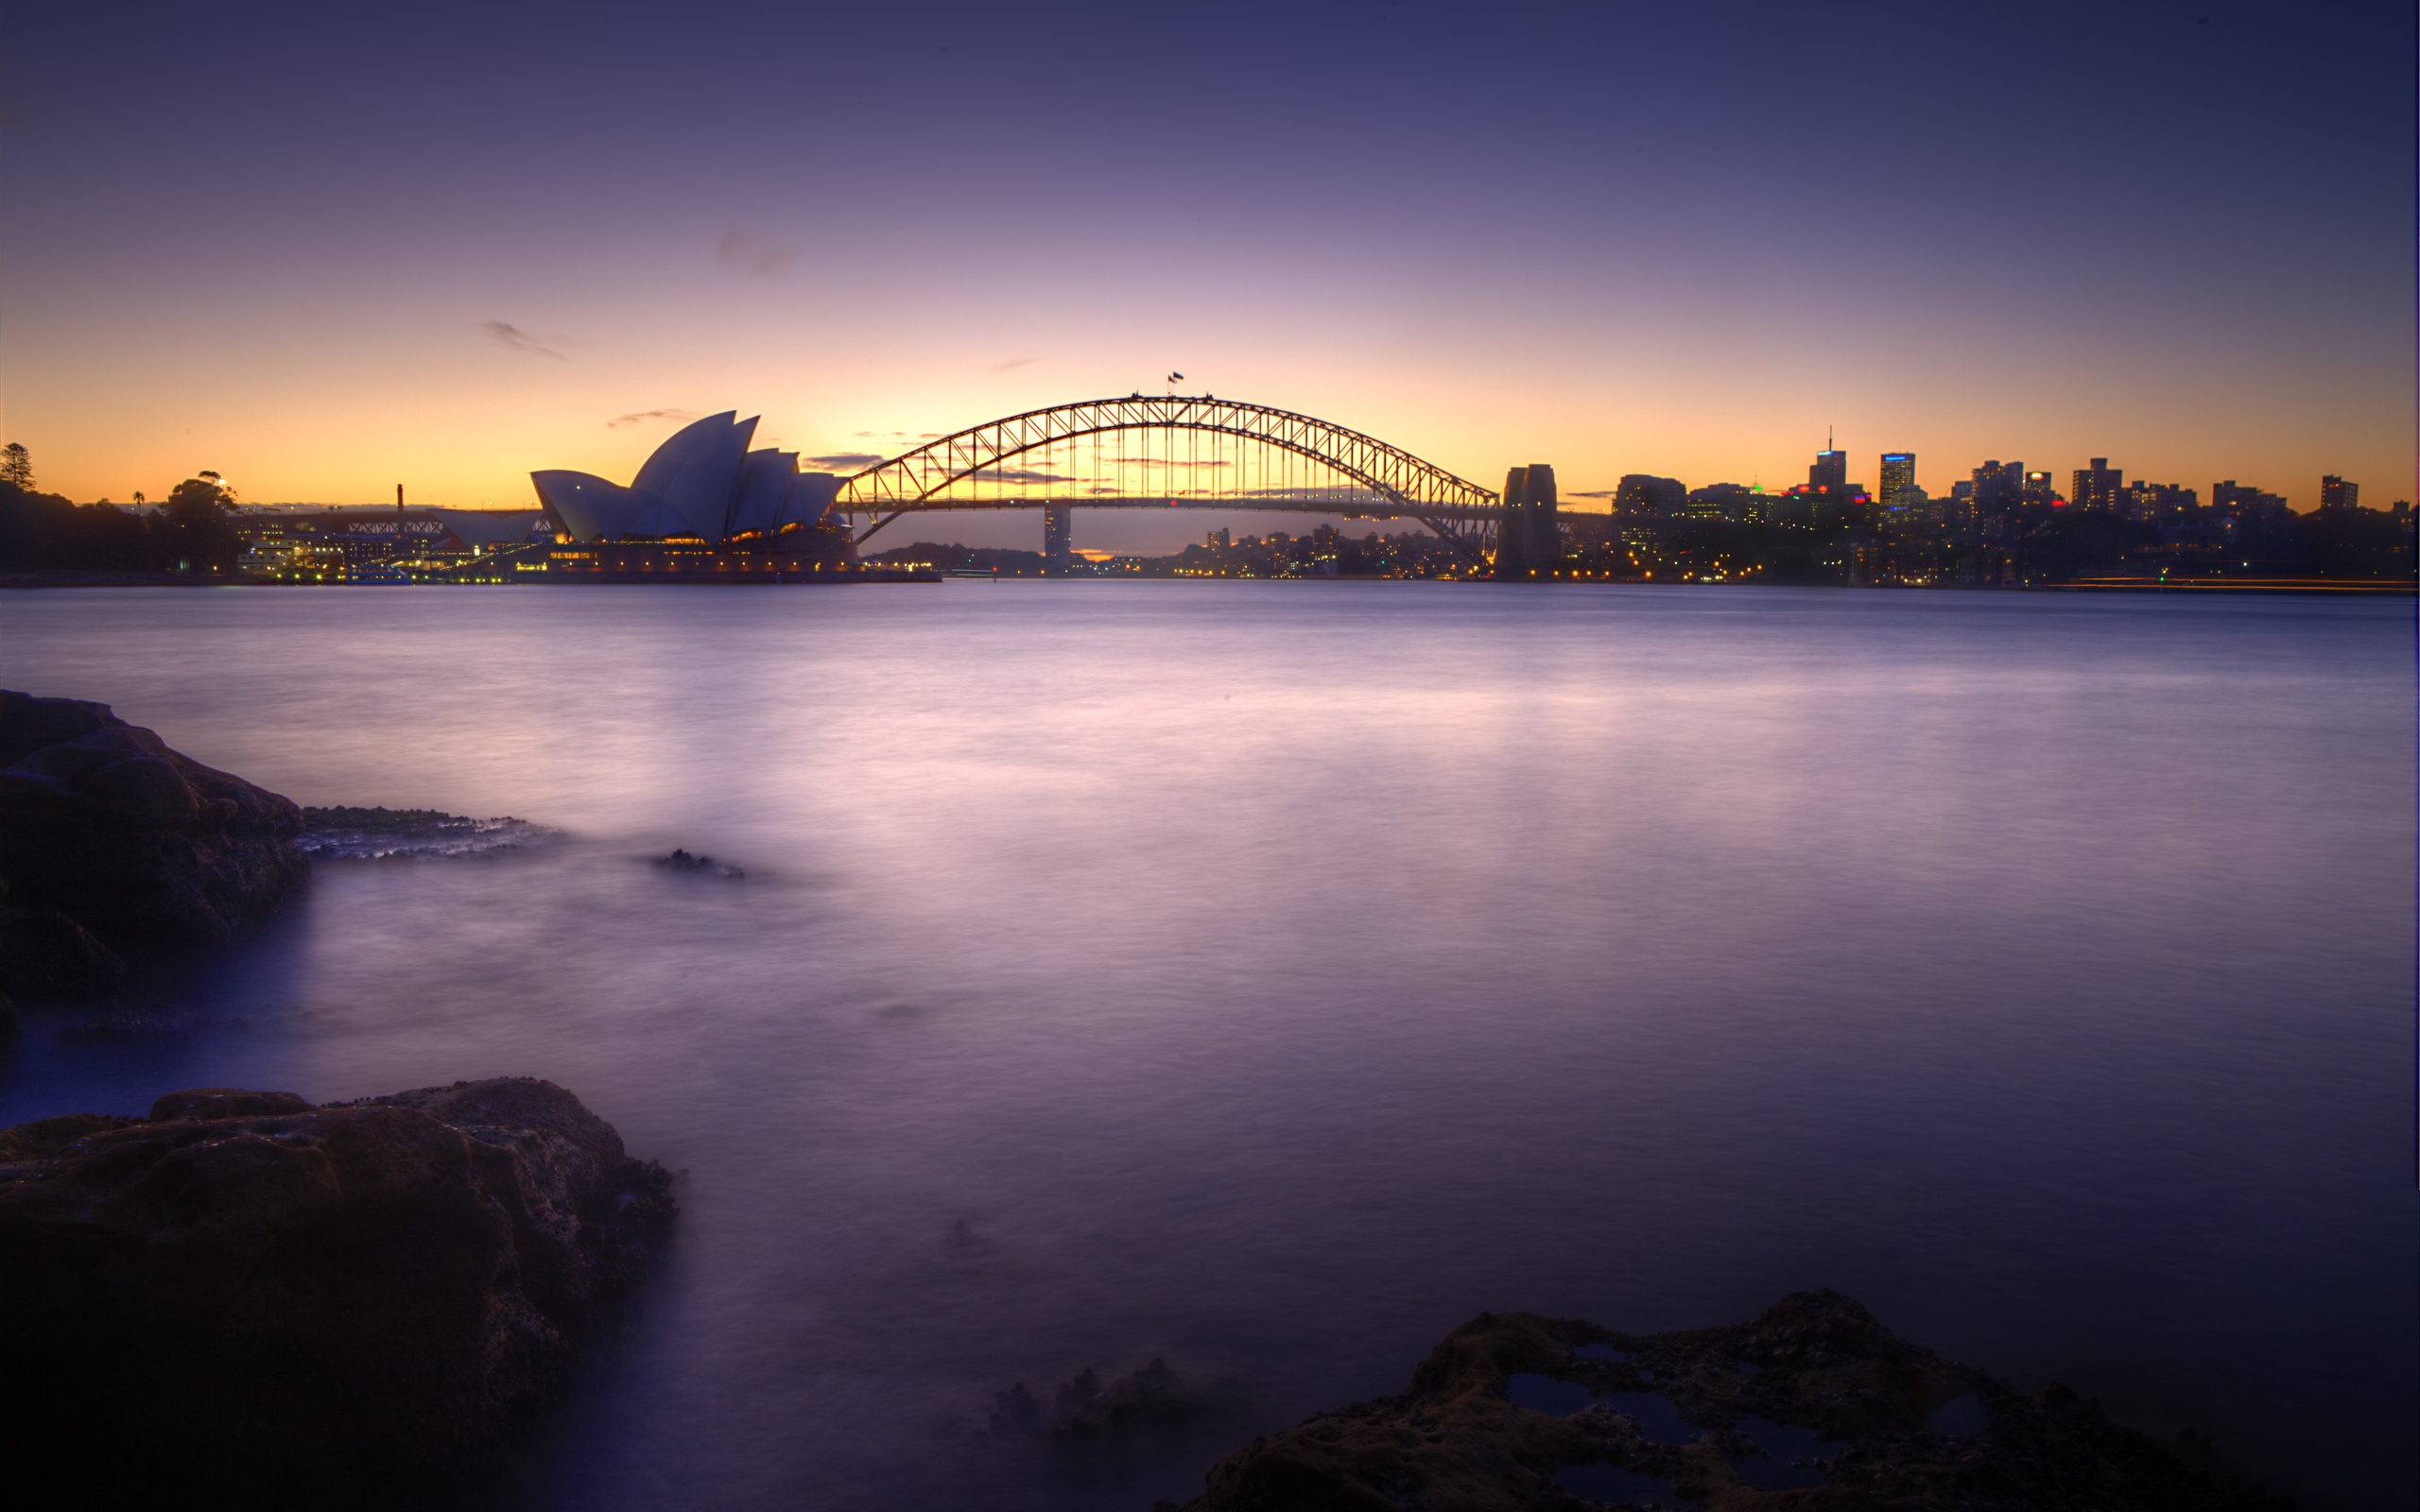 Sydney - Sydney New South Whales Australia Wallpaper (32662740